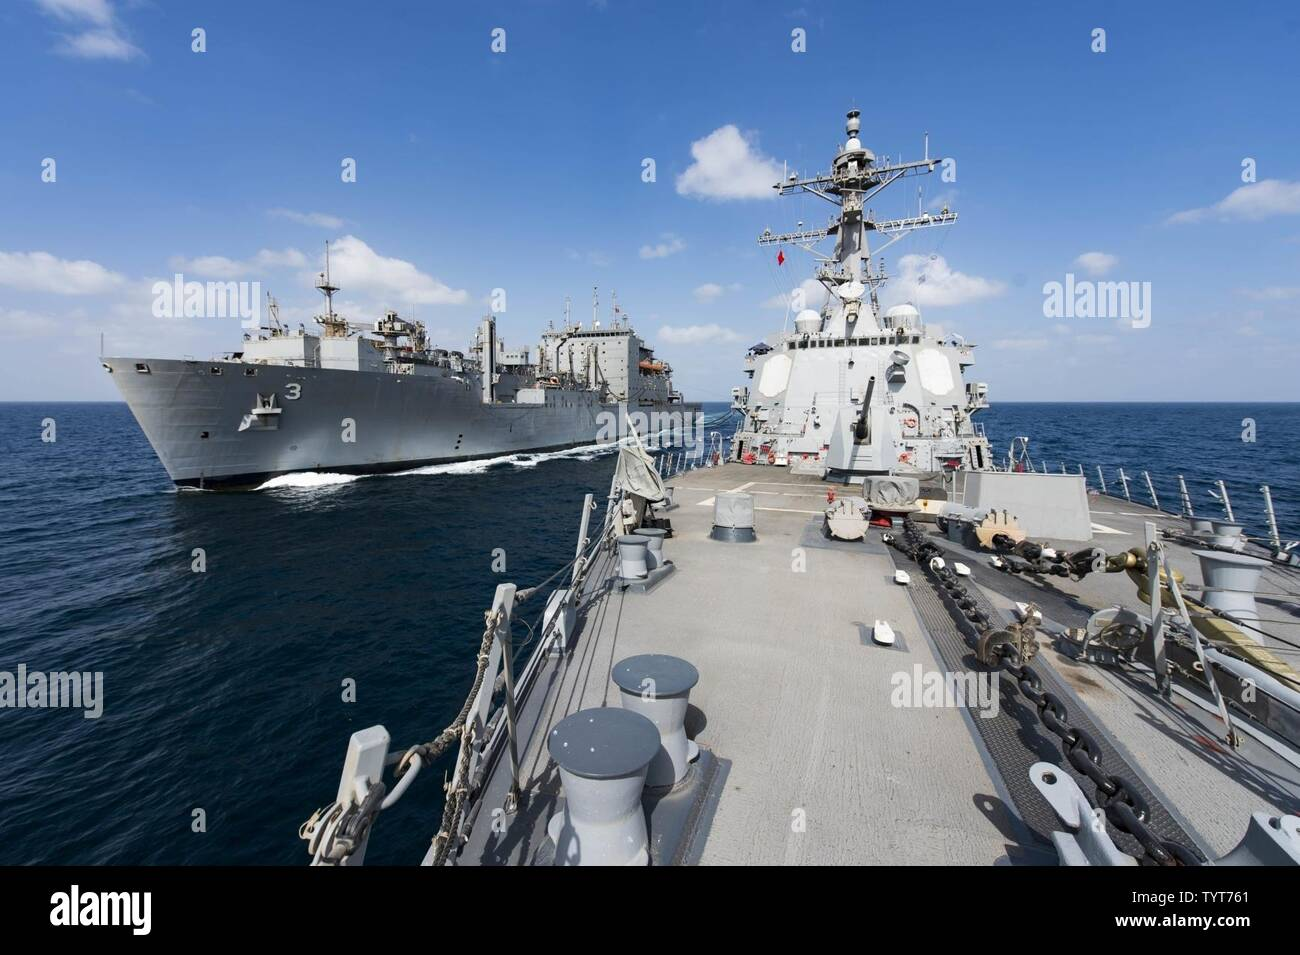 SEA (Nov. 25, 2016) The guided-missile destroyer USS Nitze (DDG 94) conducts an underway replenishment with the dry cargo and ammunition ship USNS Alan Shepard (T-AKE 3). Nitze, deployed as part of the Eisenhower Carrier Strike Group, is supporting maritime security operations and theater security cooperation efforts in the U.S. 5th Fleet area of operations. - Stock Image